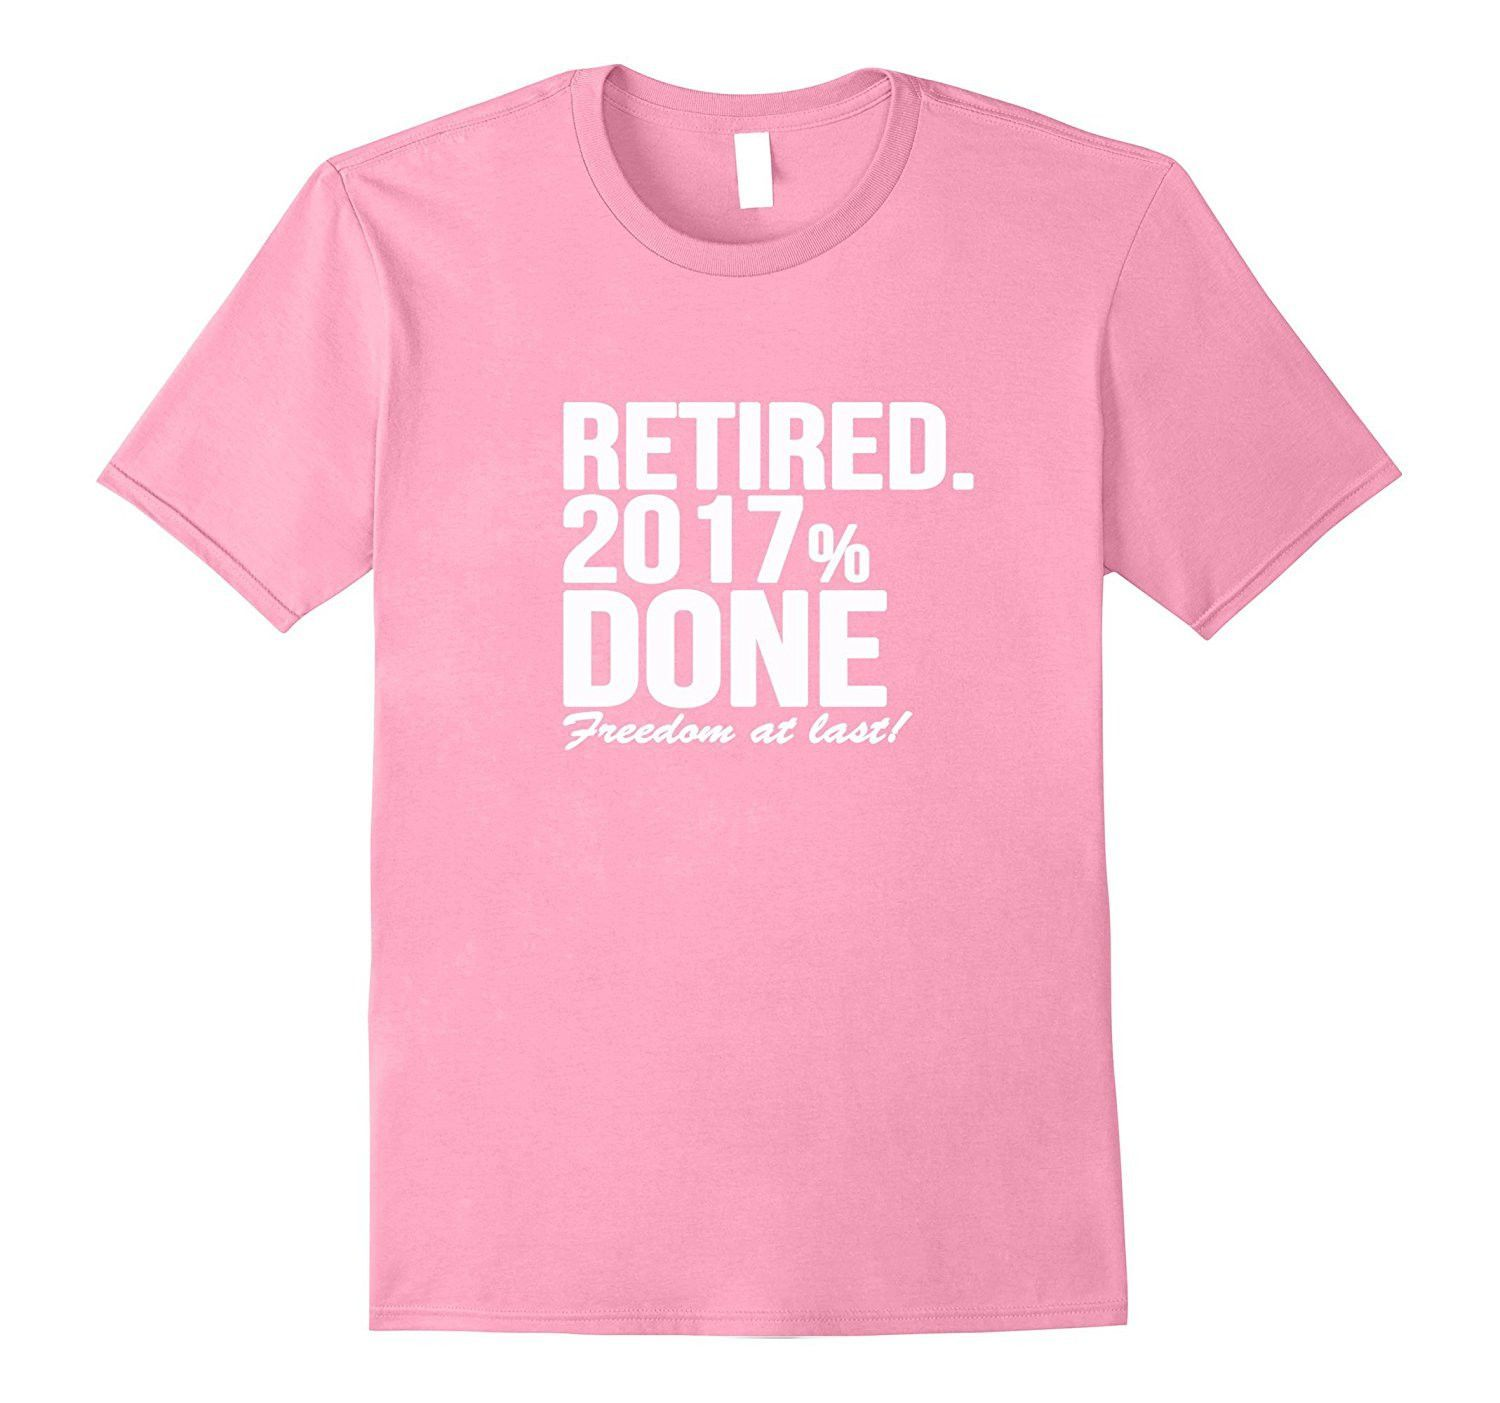 Retired 2017 t shirt funny retirement gift shirt cute for I like insects shirt